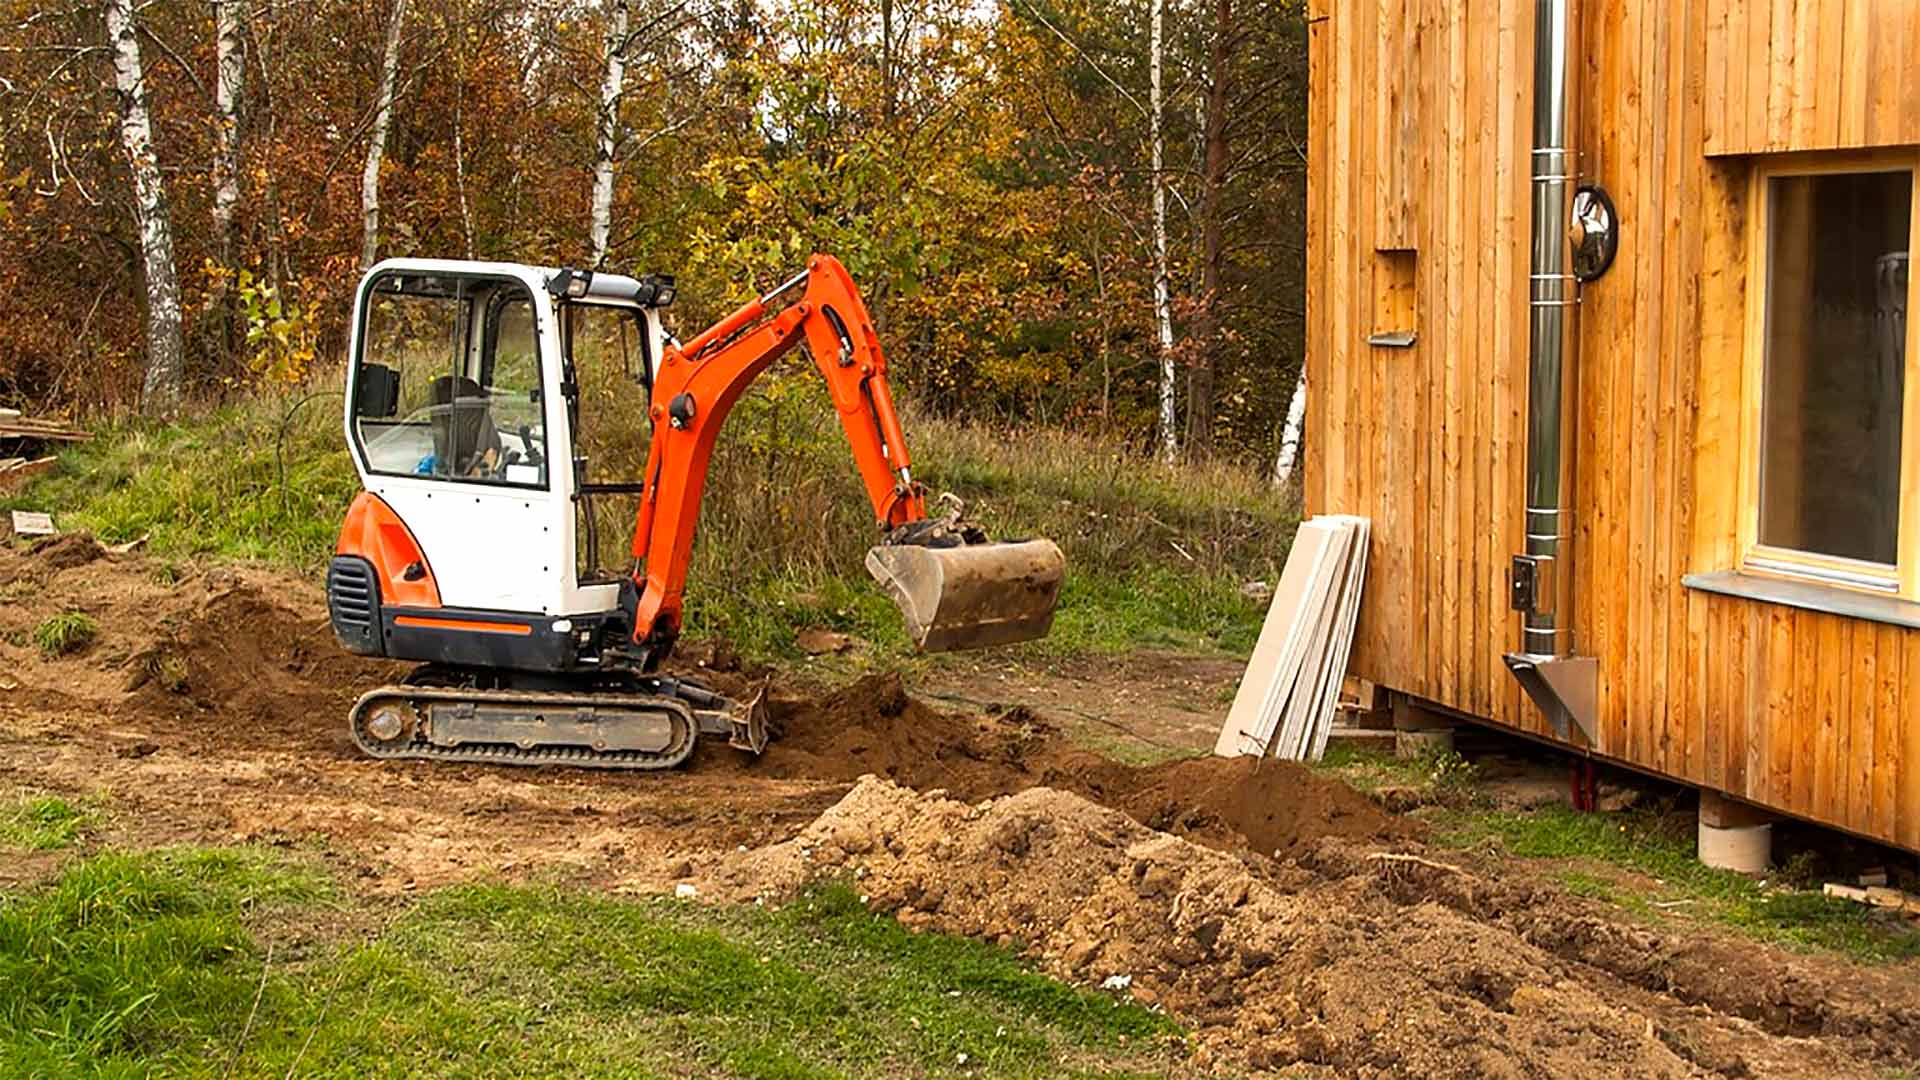 Excavating around home to build an addition